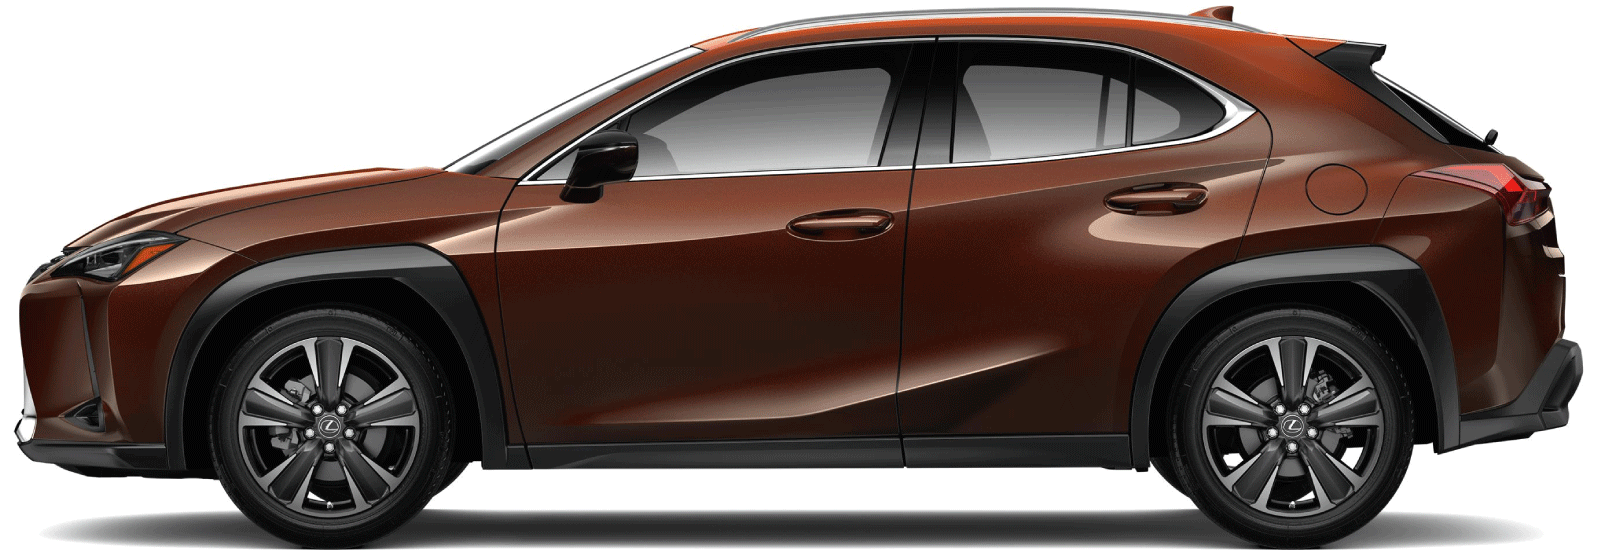 Miami Lexus UX Complete Lease Program